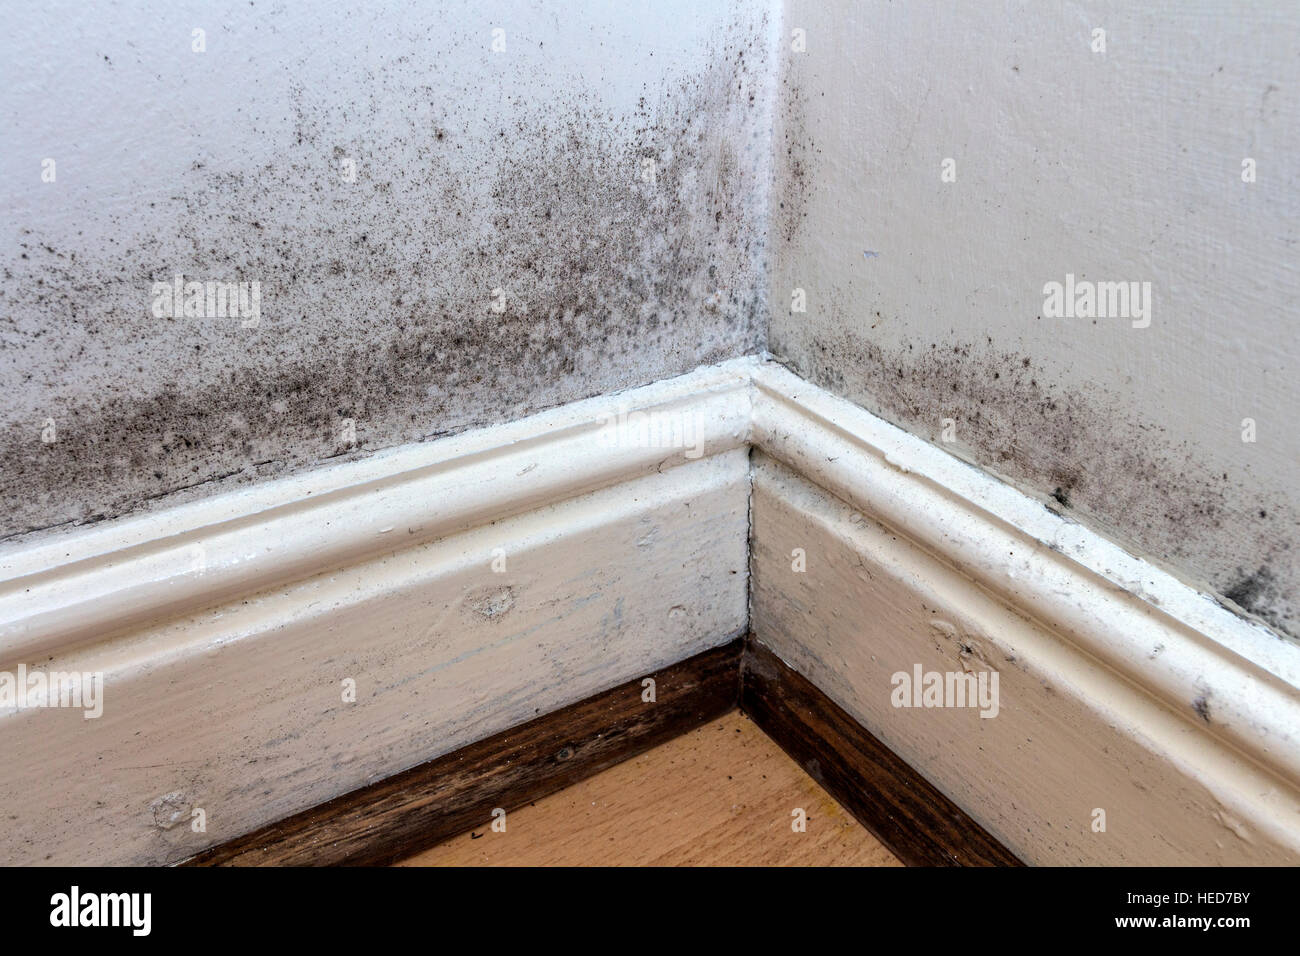 Black Mould Growing on the Walls, Skirting Boards and Floor of a Rented House in the UK - Stock Image